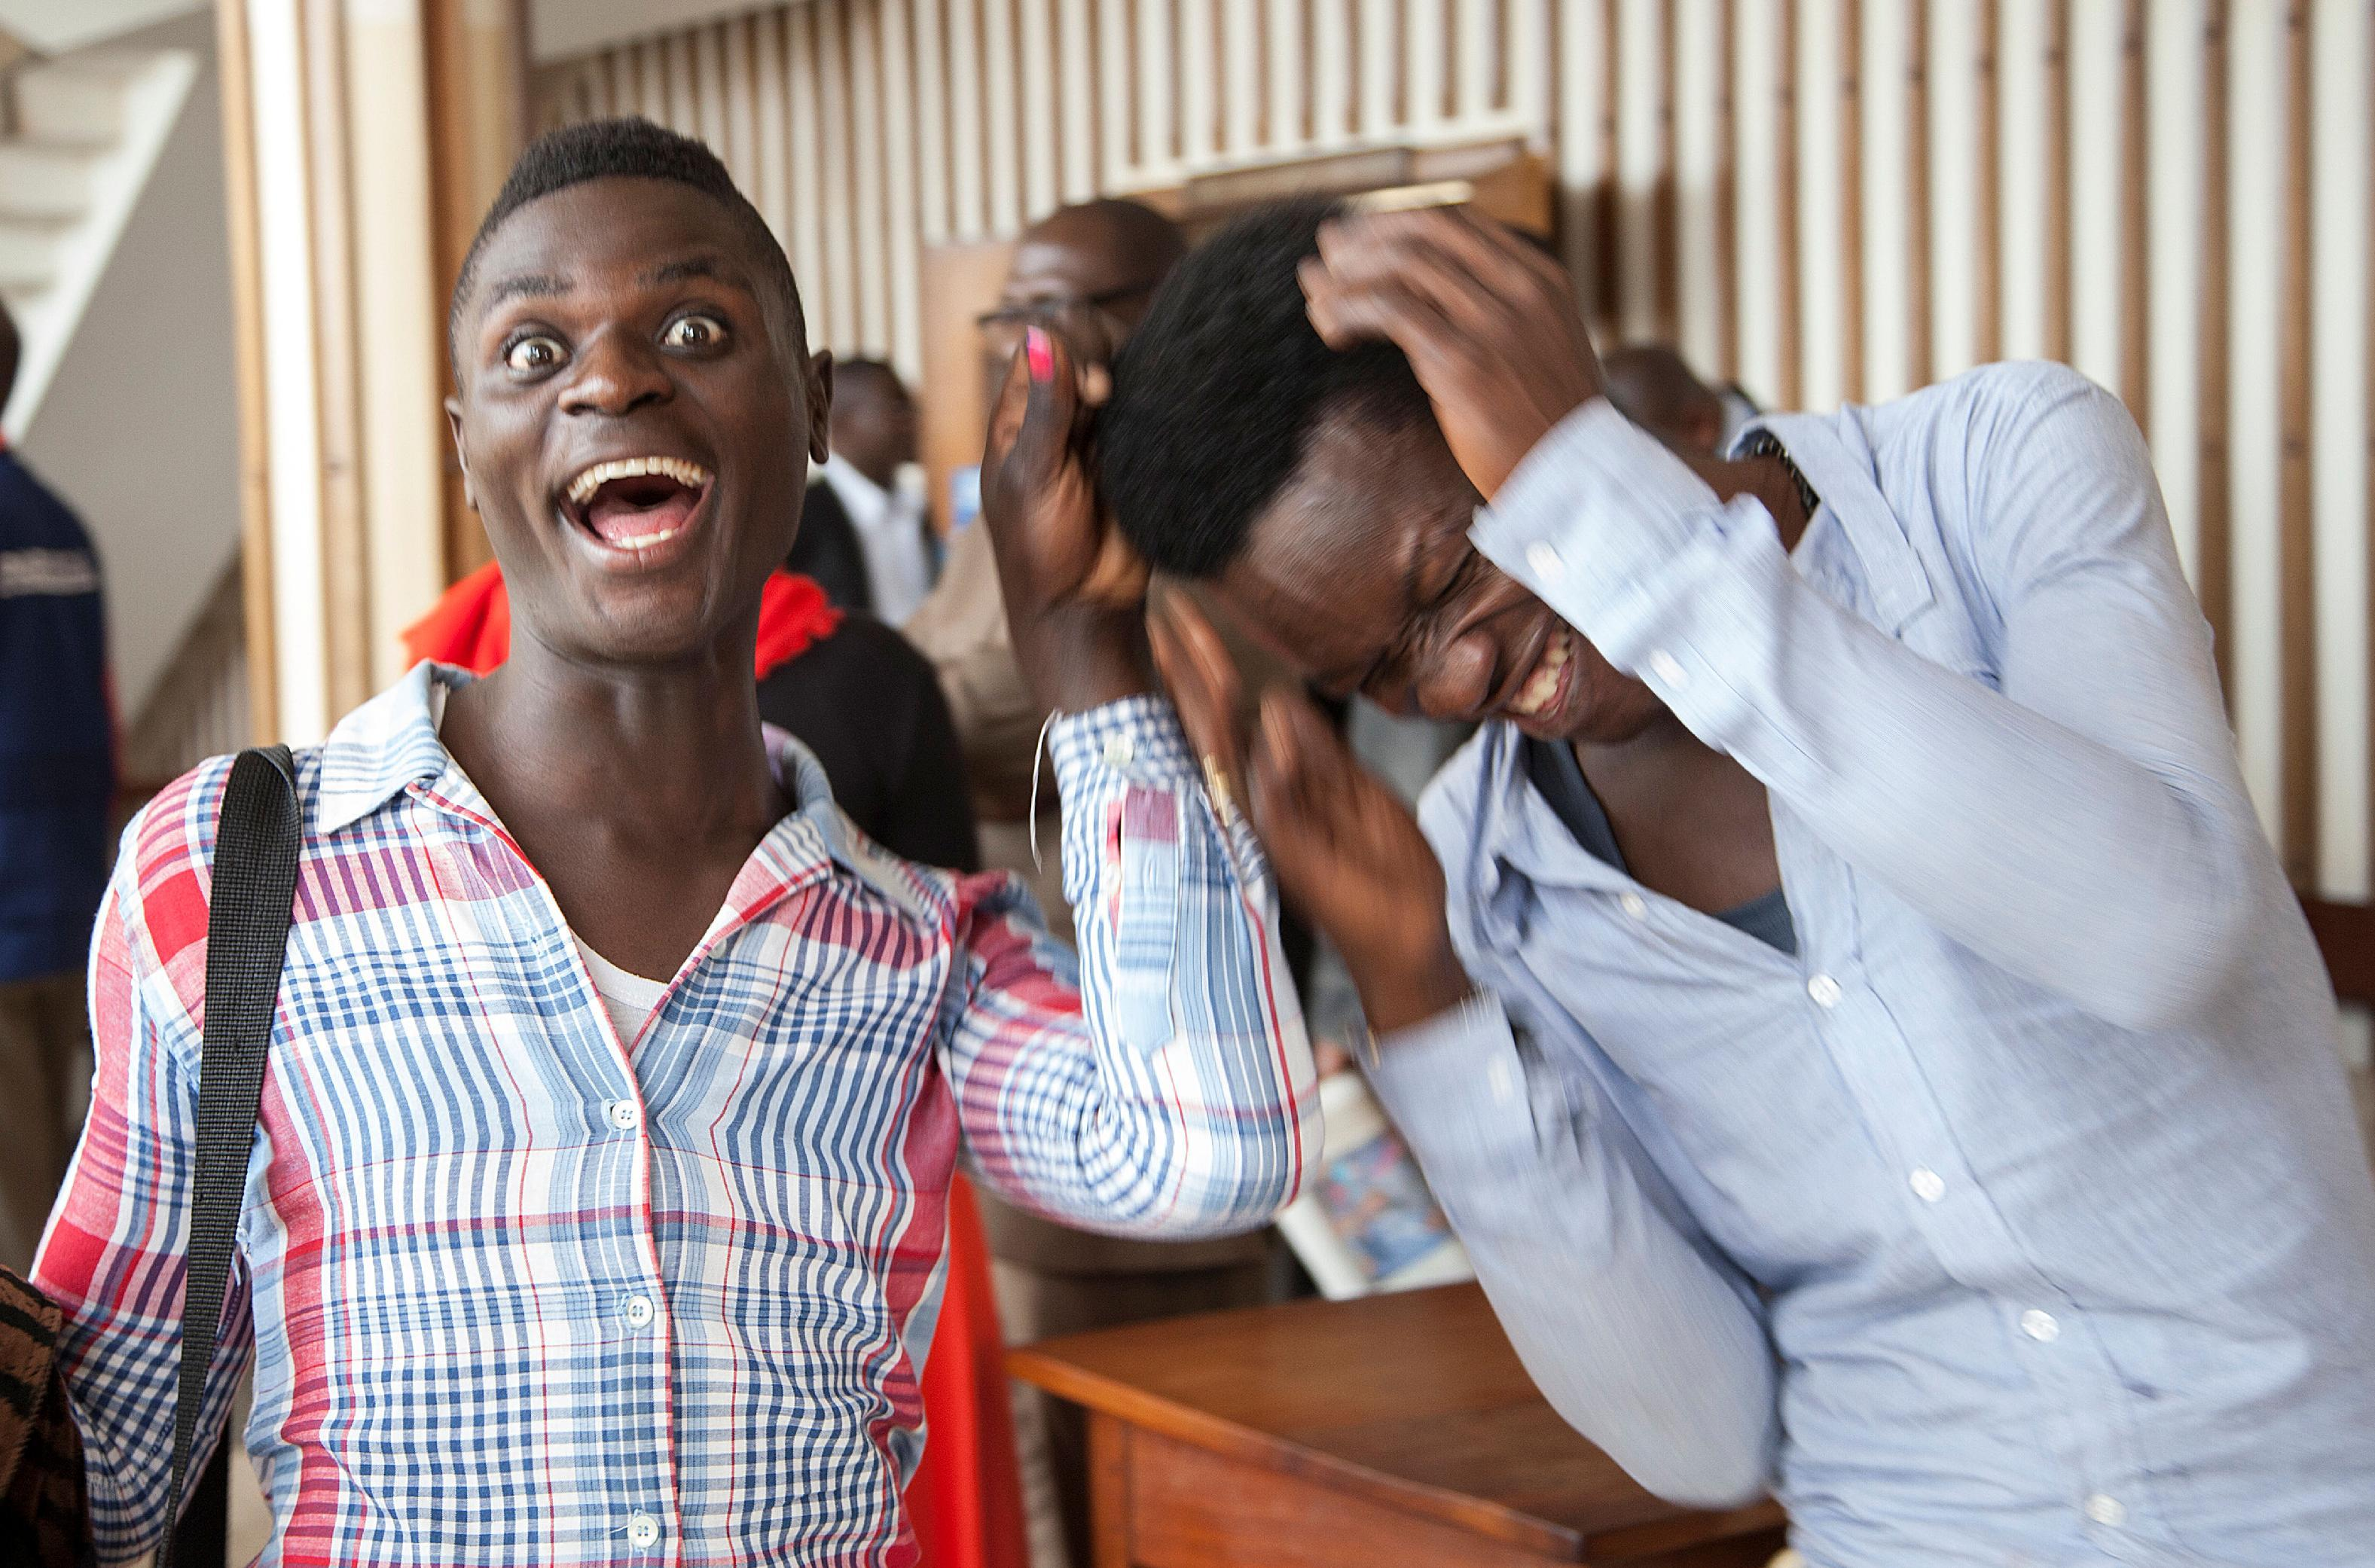 Uganda 'gay' trial dismissed due to lack of evidence